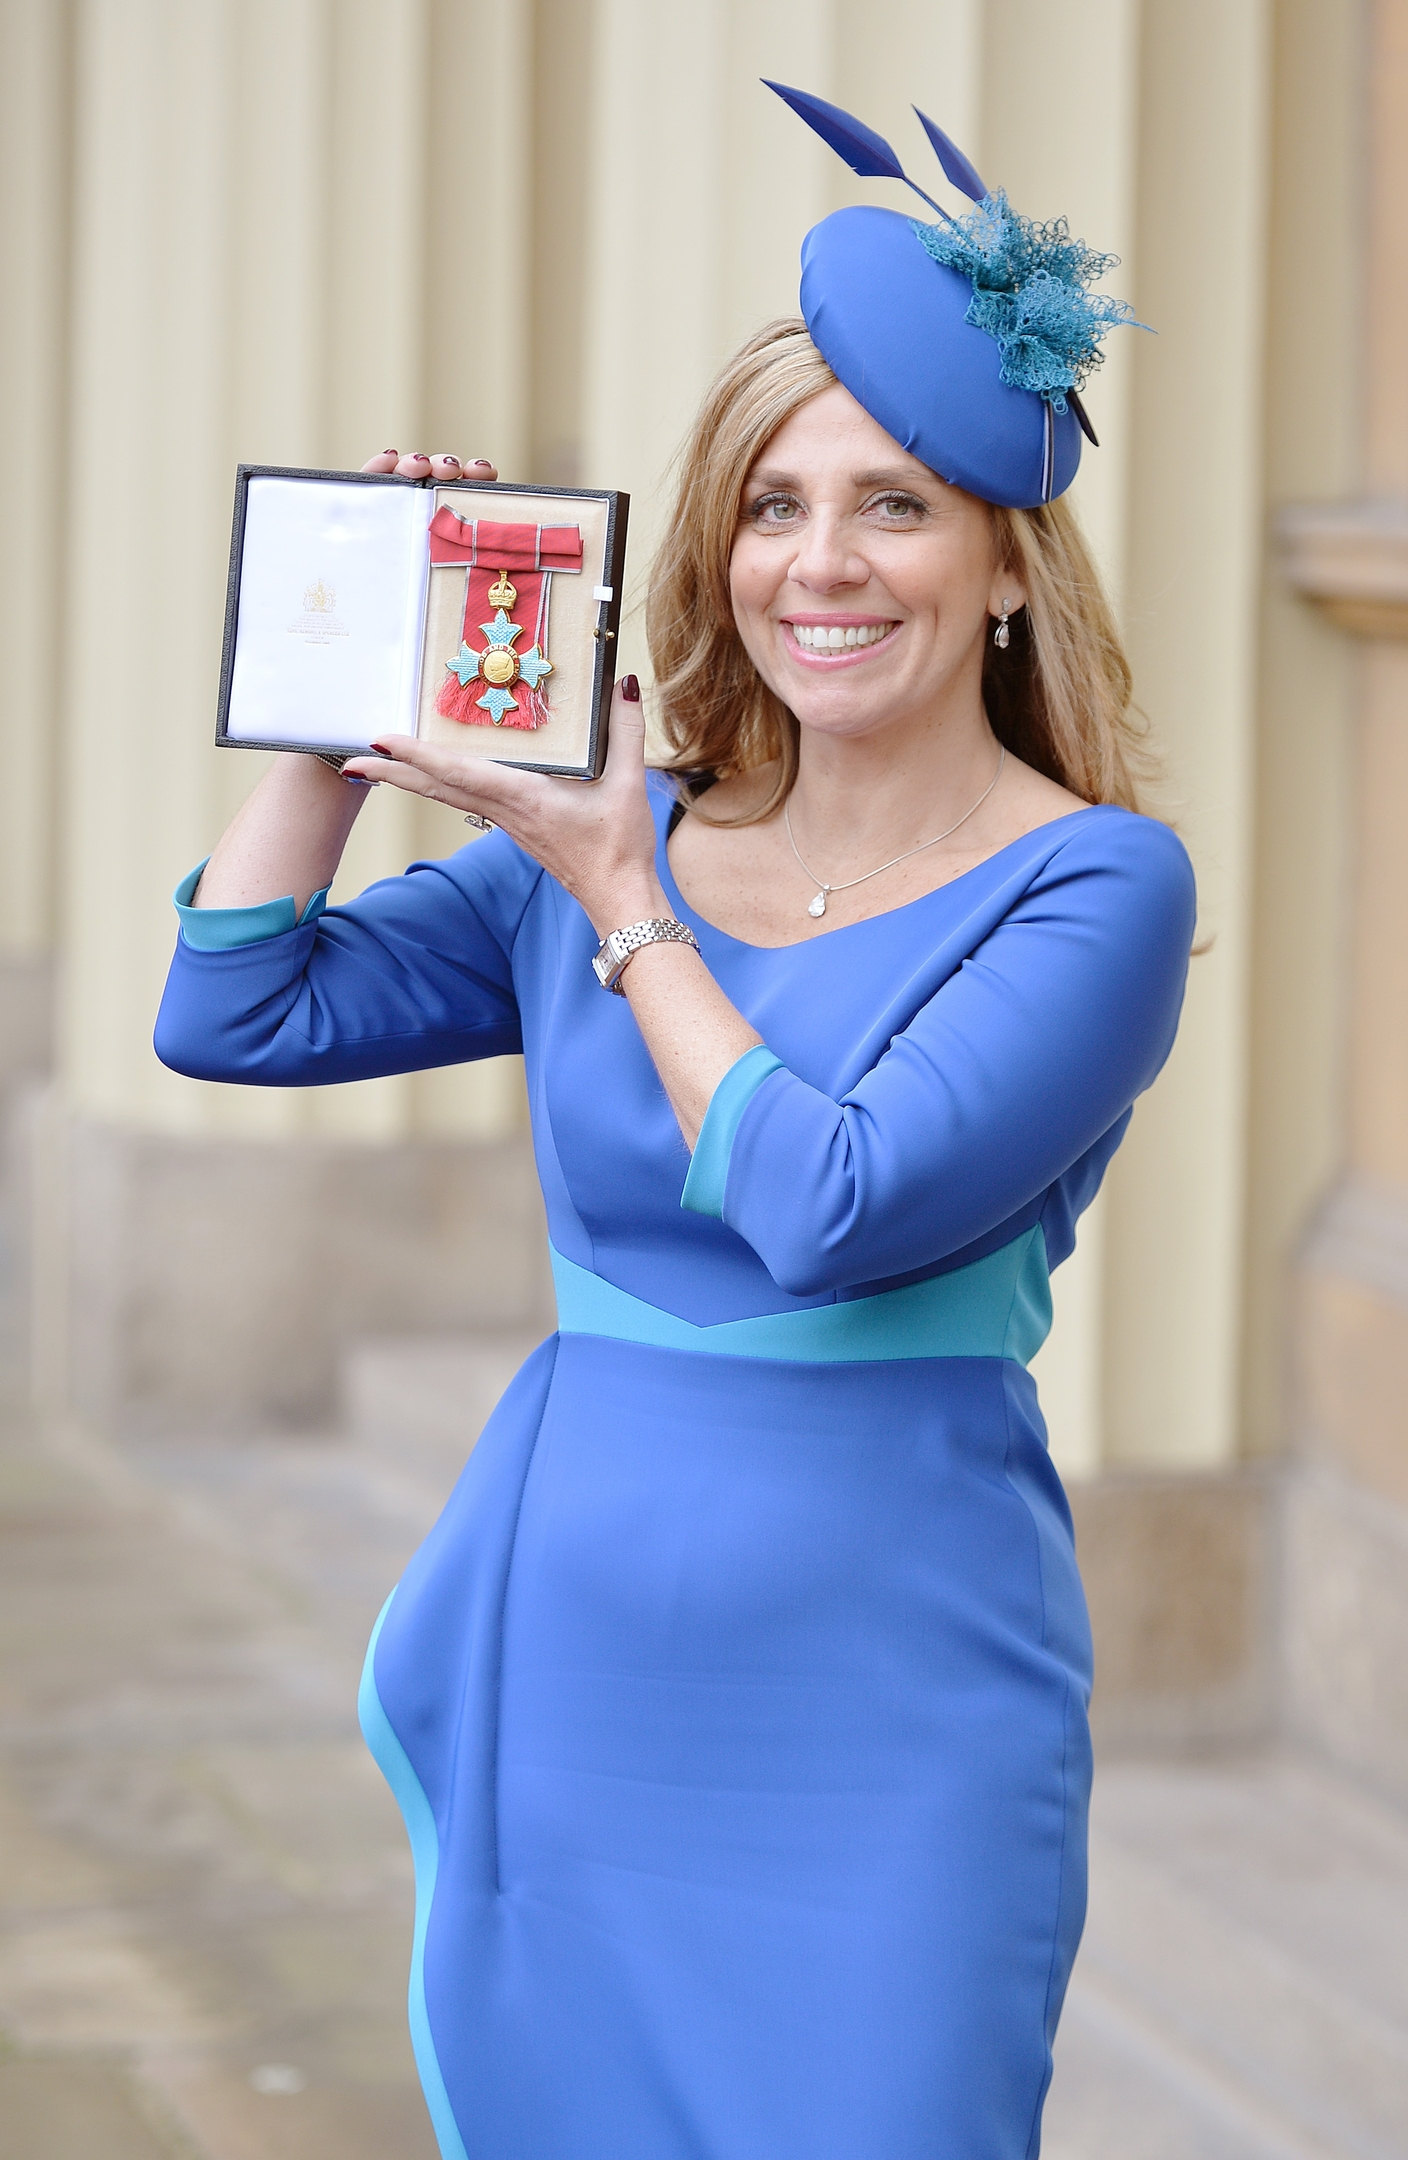 Lady Mendelsohn with her Commander of the Order of the British Empire (CBE) medal which was presented by the Prince of Wales at the Investiture ceremony in Buckingham Palace, London.